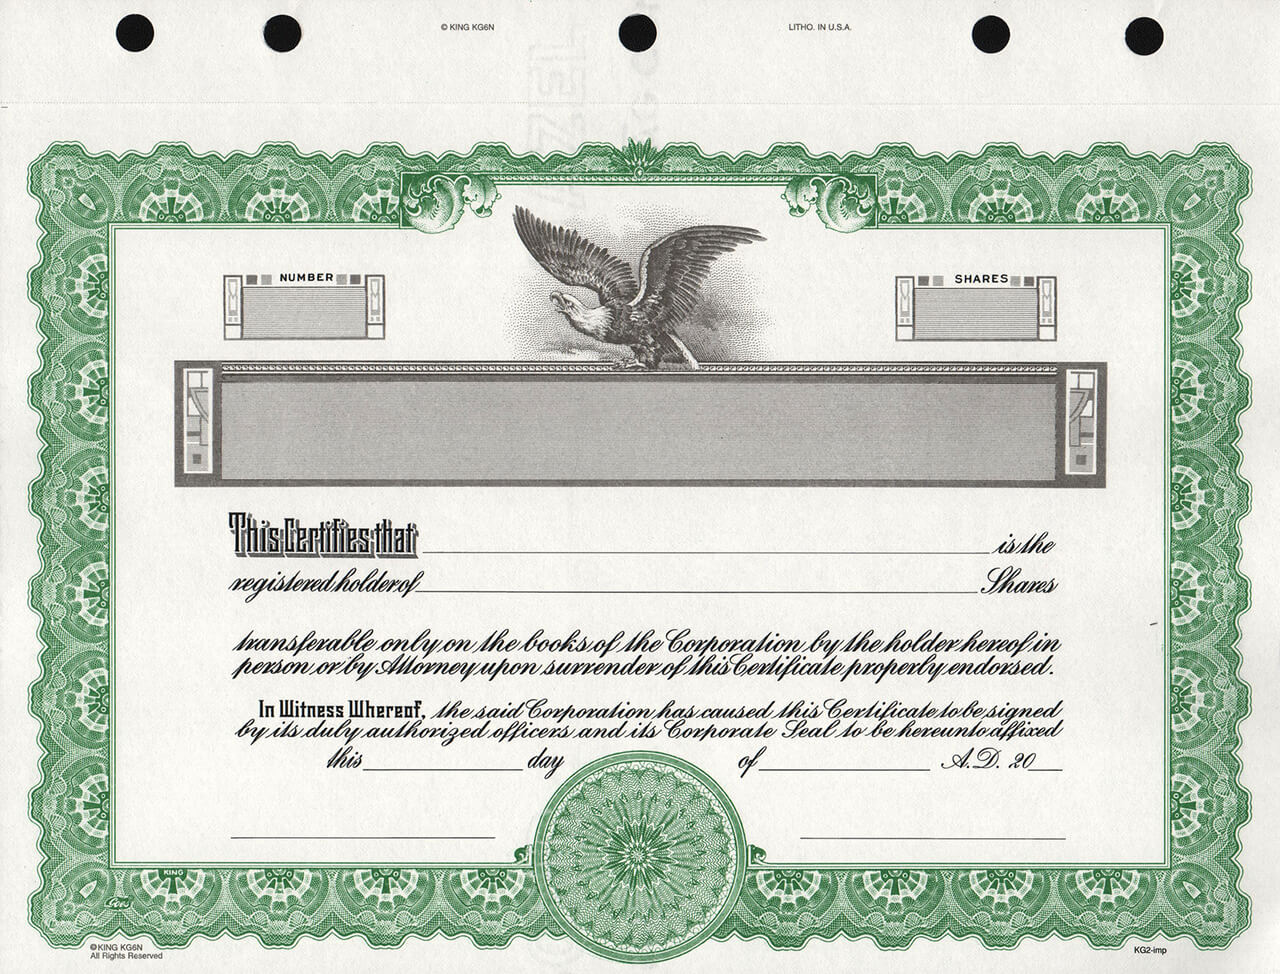 It's just a photo of Printable Stock Certificate inside shareholder certificate